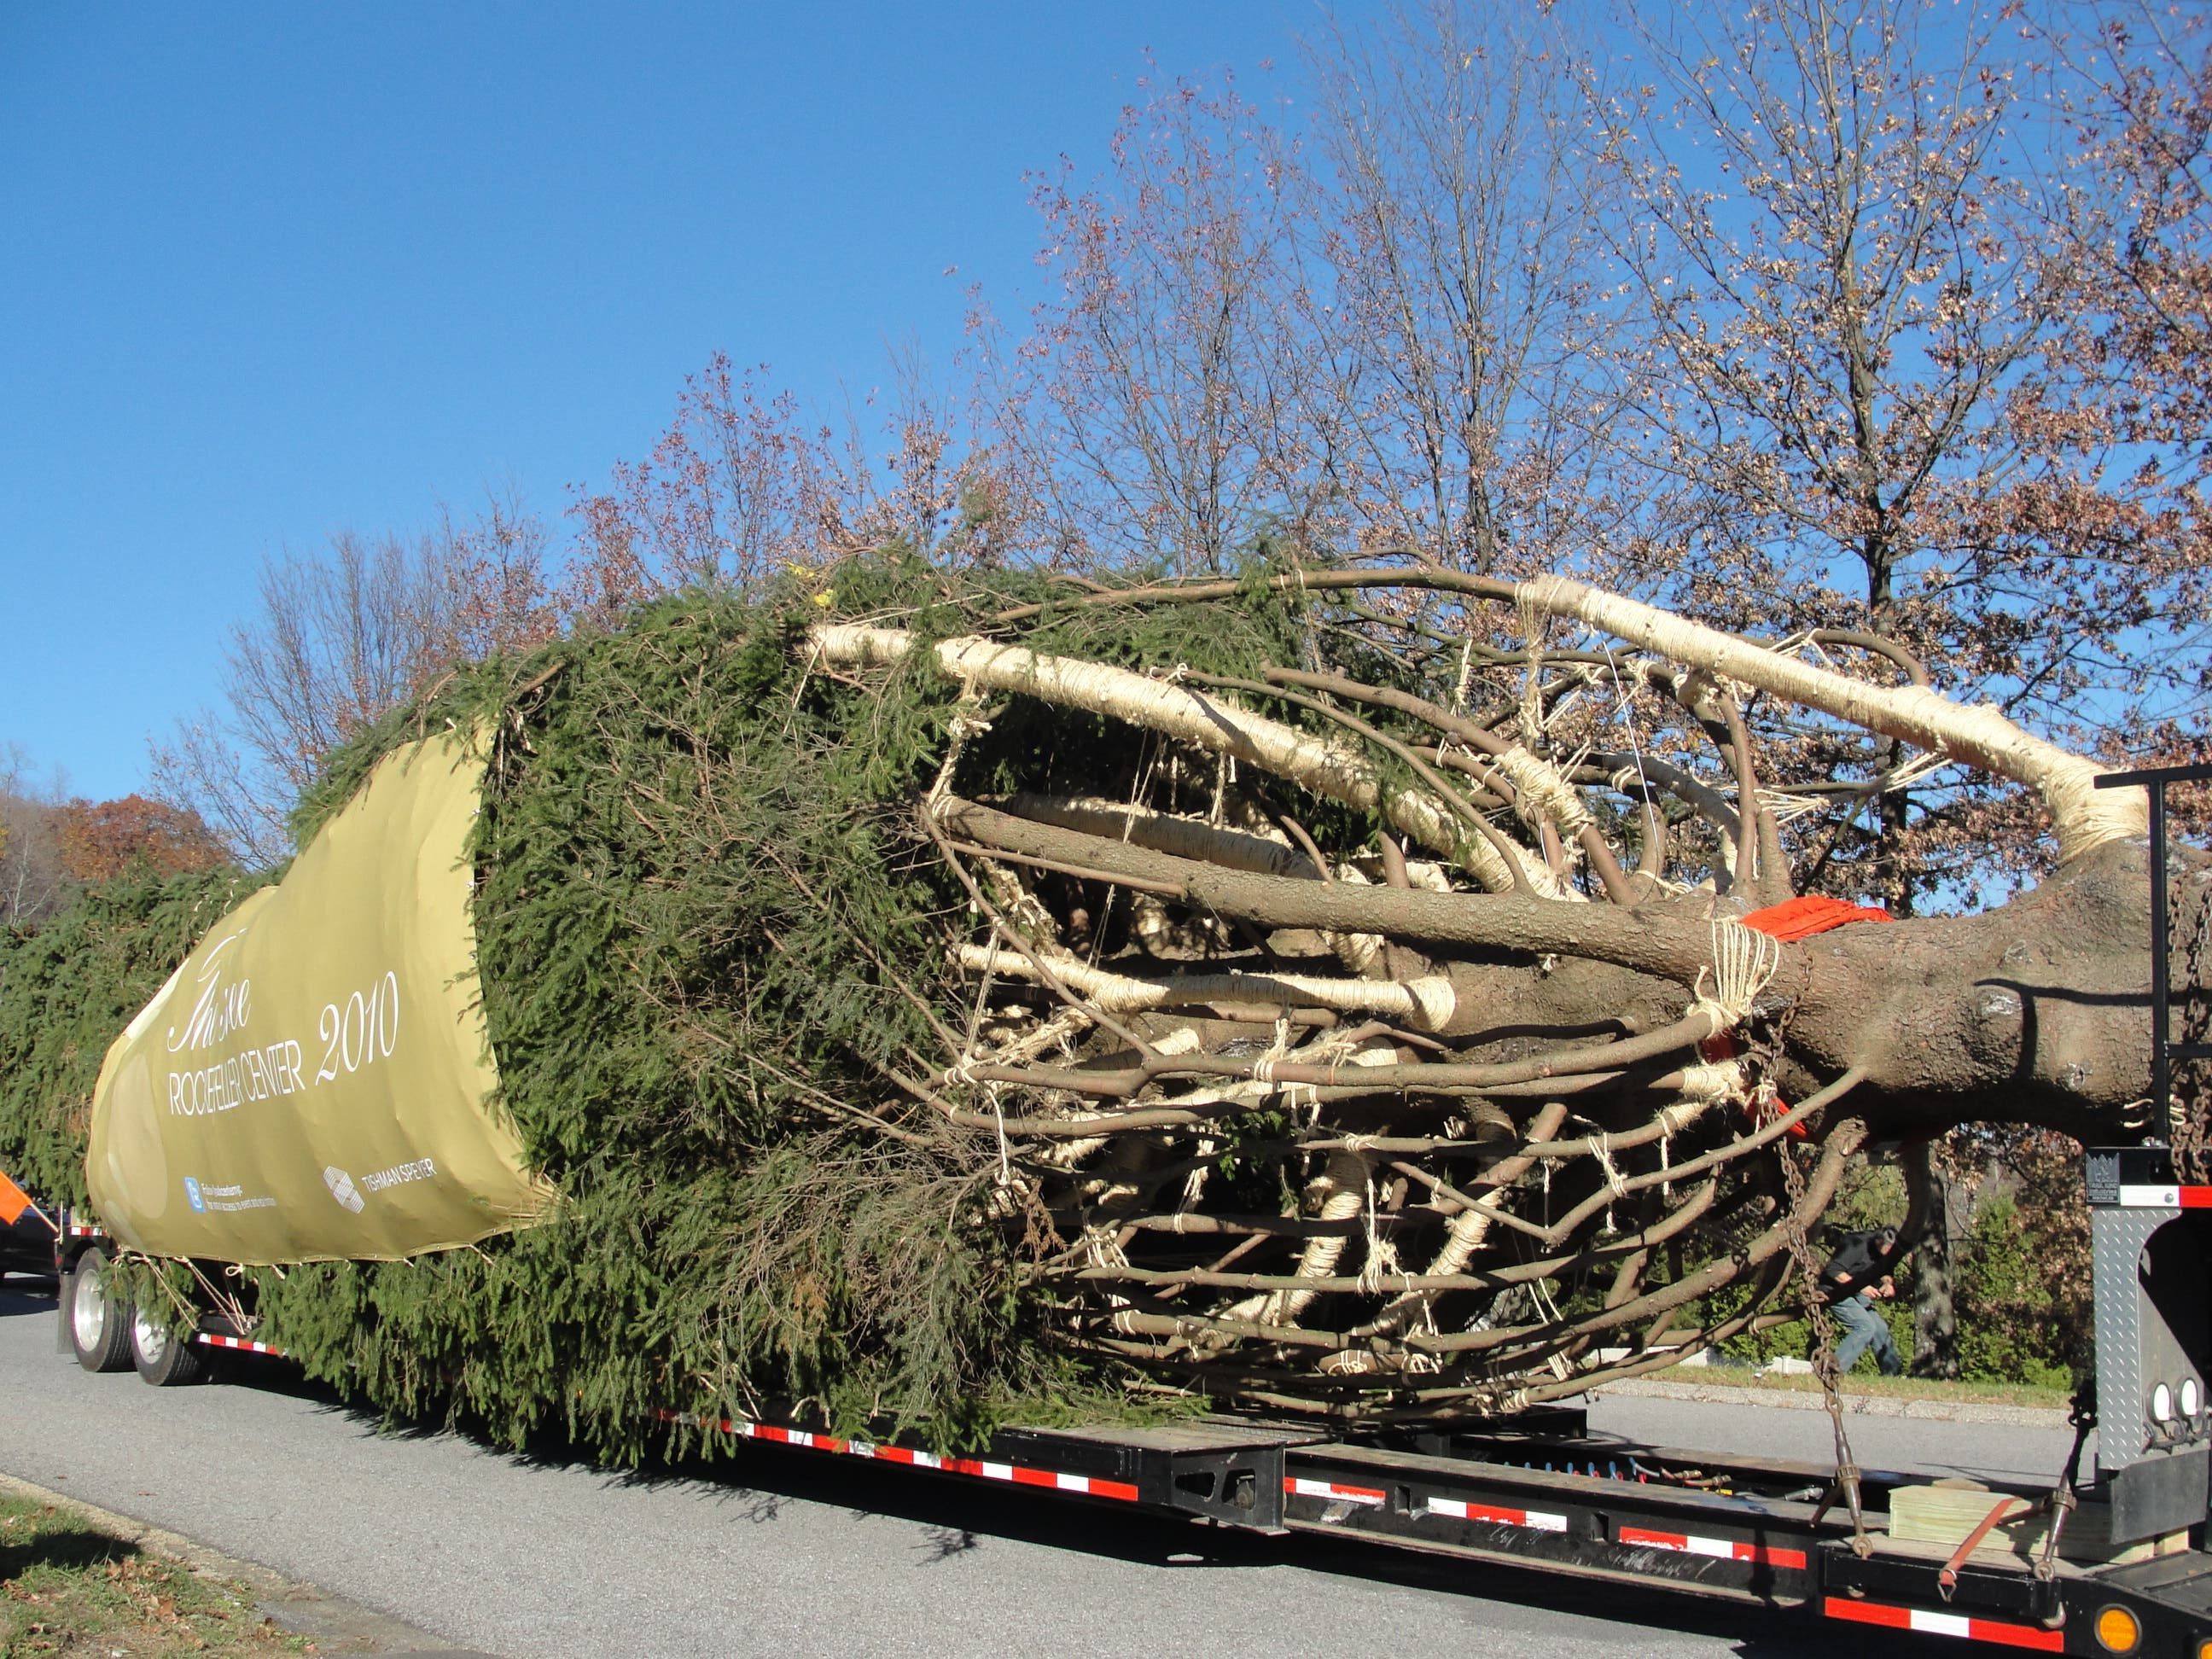 Christmas Tree In Nyc.Rockefeller Christmas Tree Makes Its Way From Mahopac To Nyc